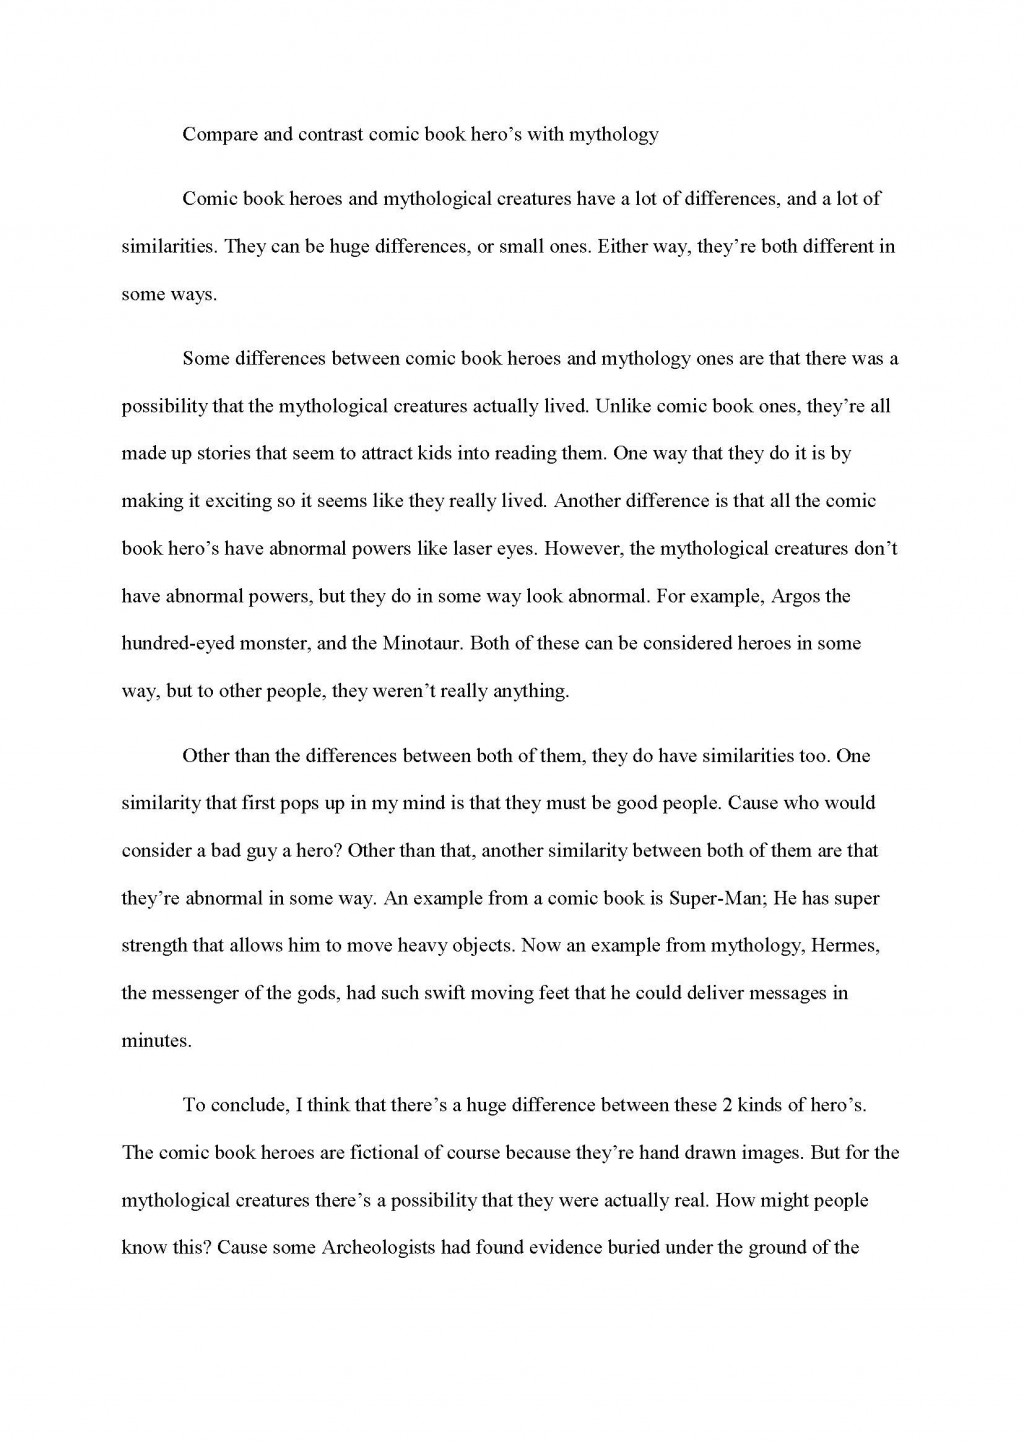 013 Rough Draft Essay Compare And Contrast Sampleid8072 Unforgettable Template Examples Large